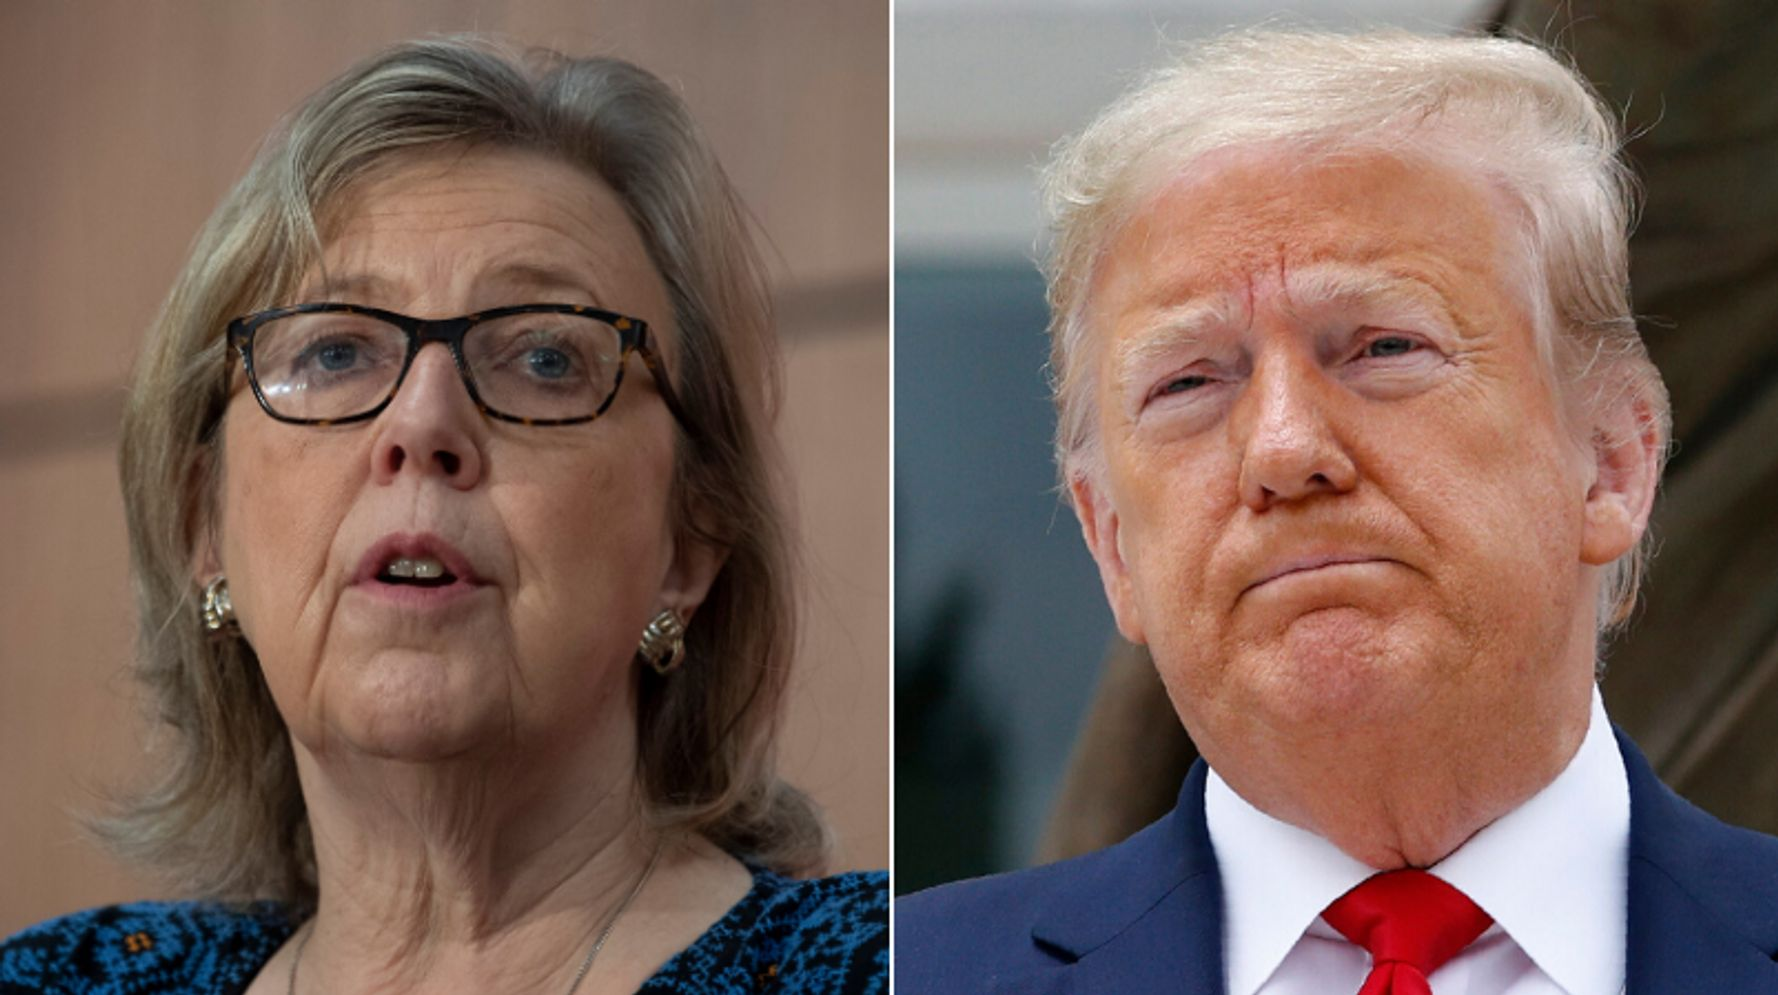 Elizabeth May Wants Canada To Accept U.S. Asylum Seekers Now That Country 'No Longer Safe'